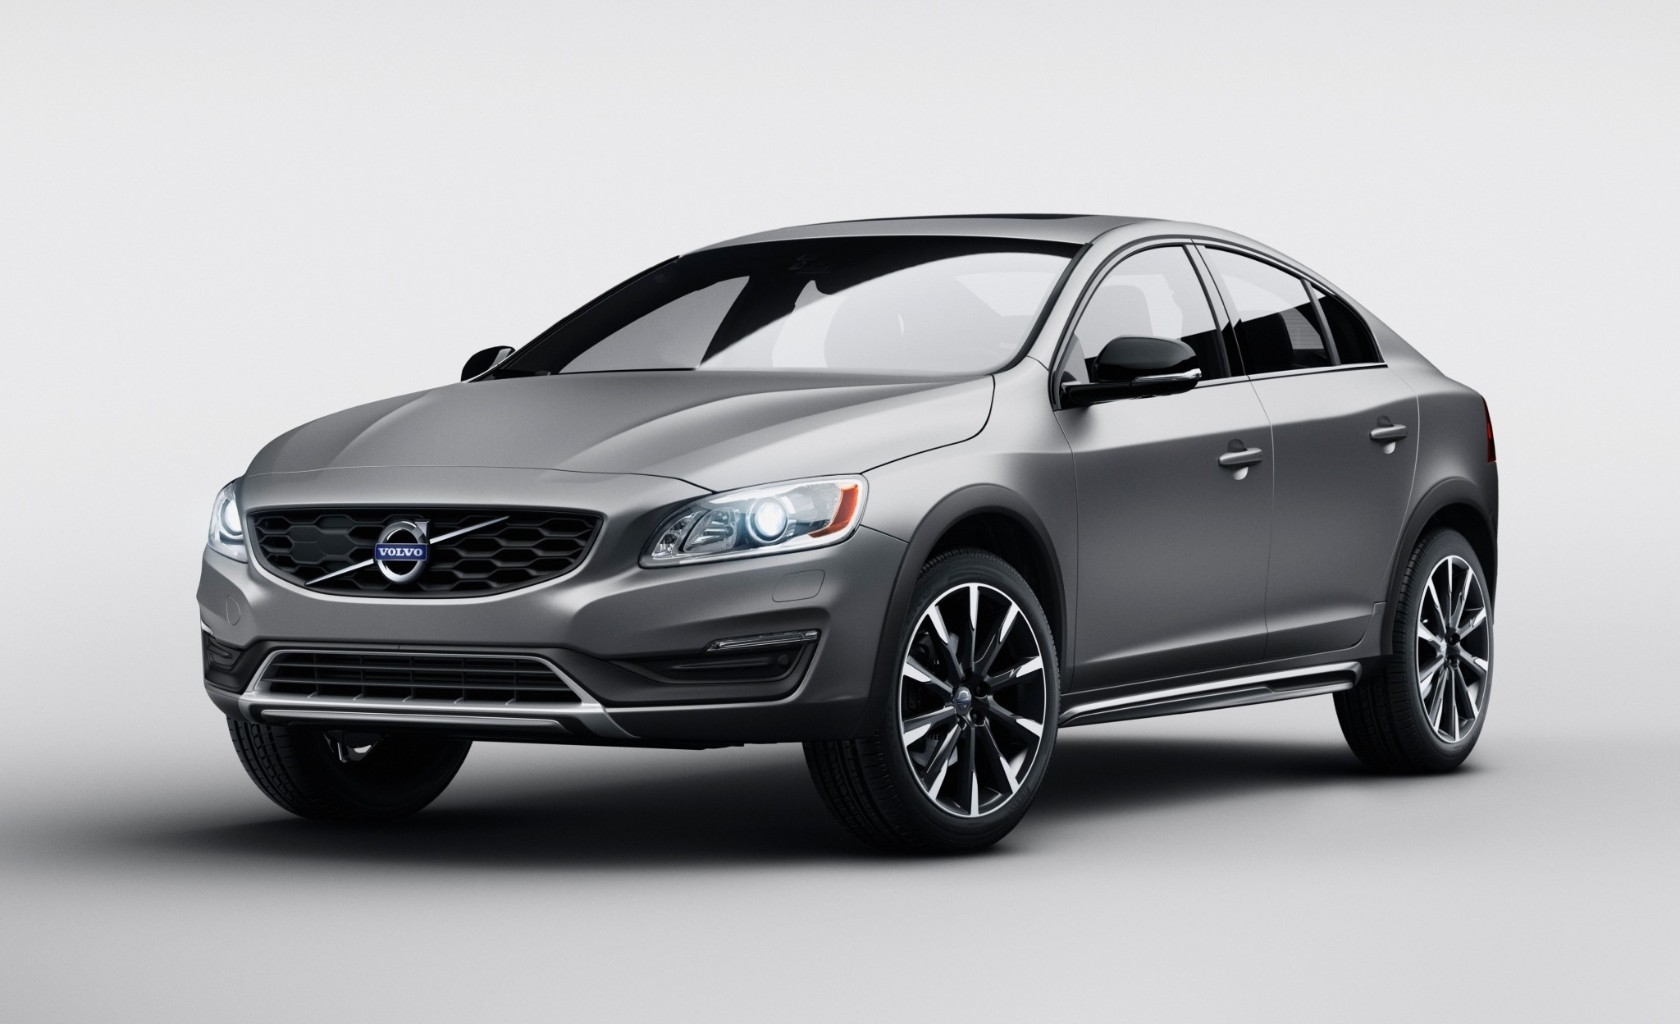 Volvo S60 Cross Country. Fotocredit: Volvo